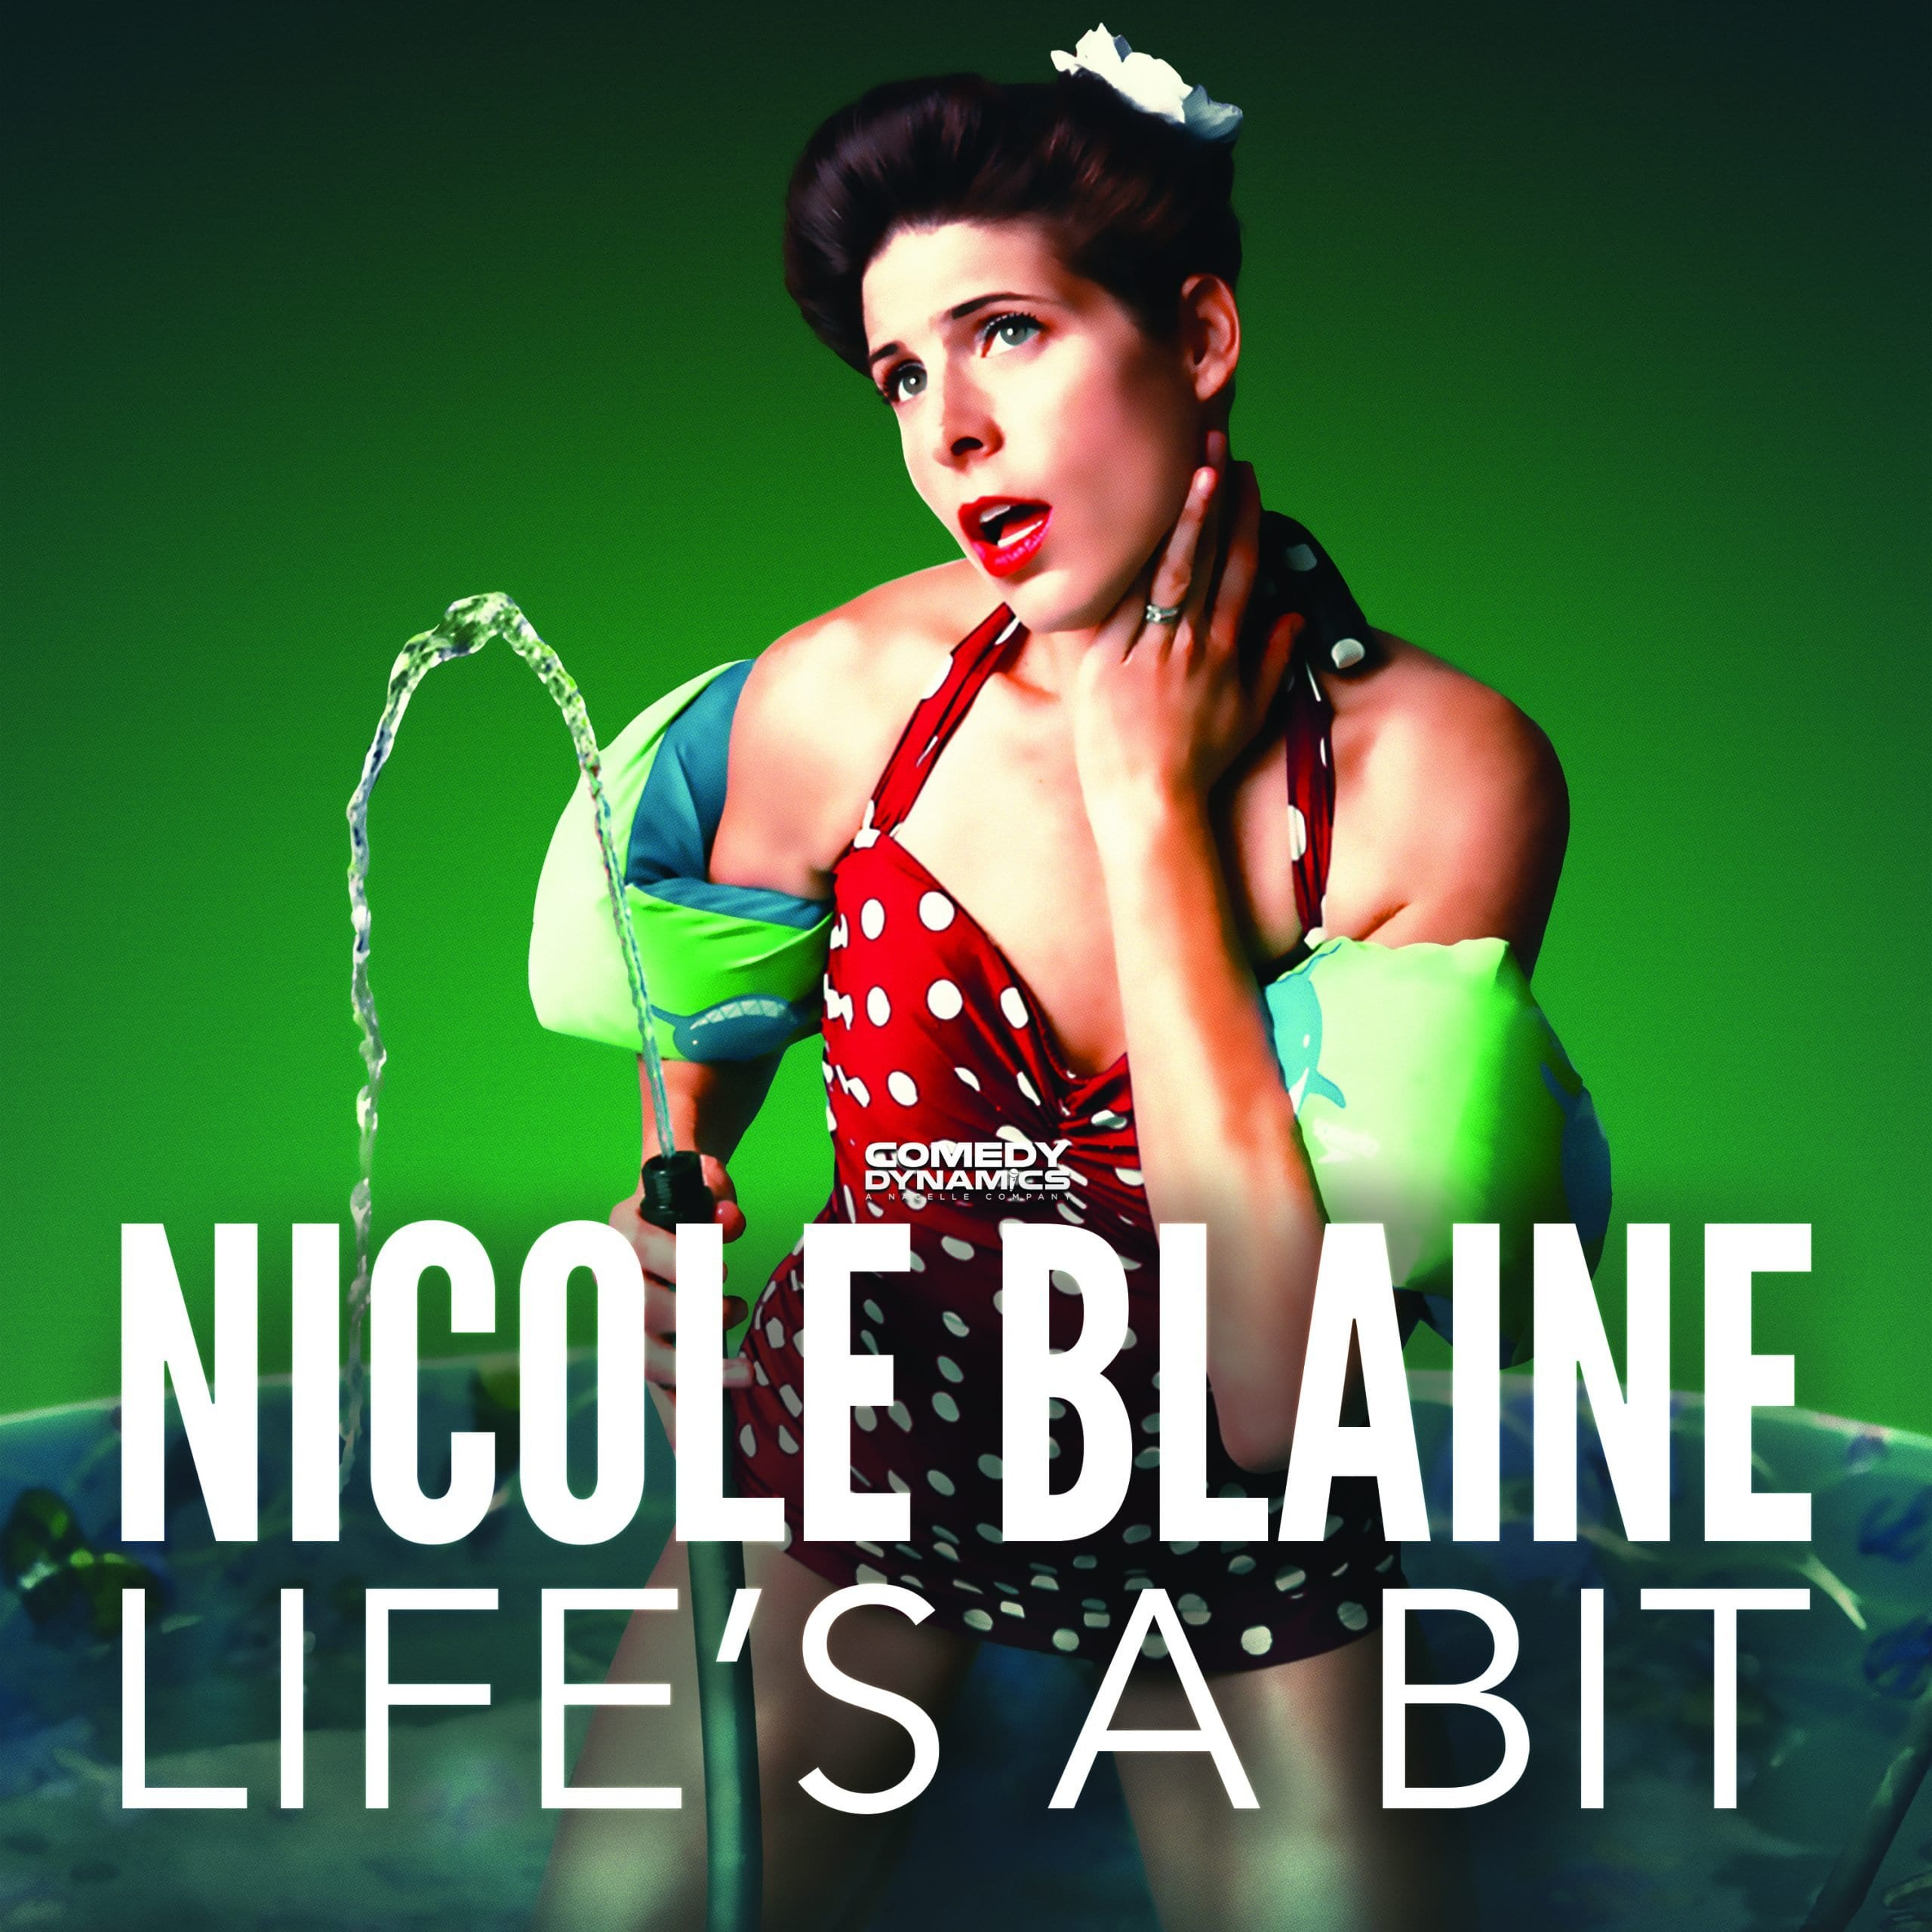 NicoleBlaine LifesABit Album x